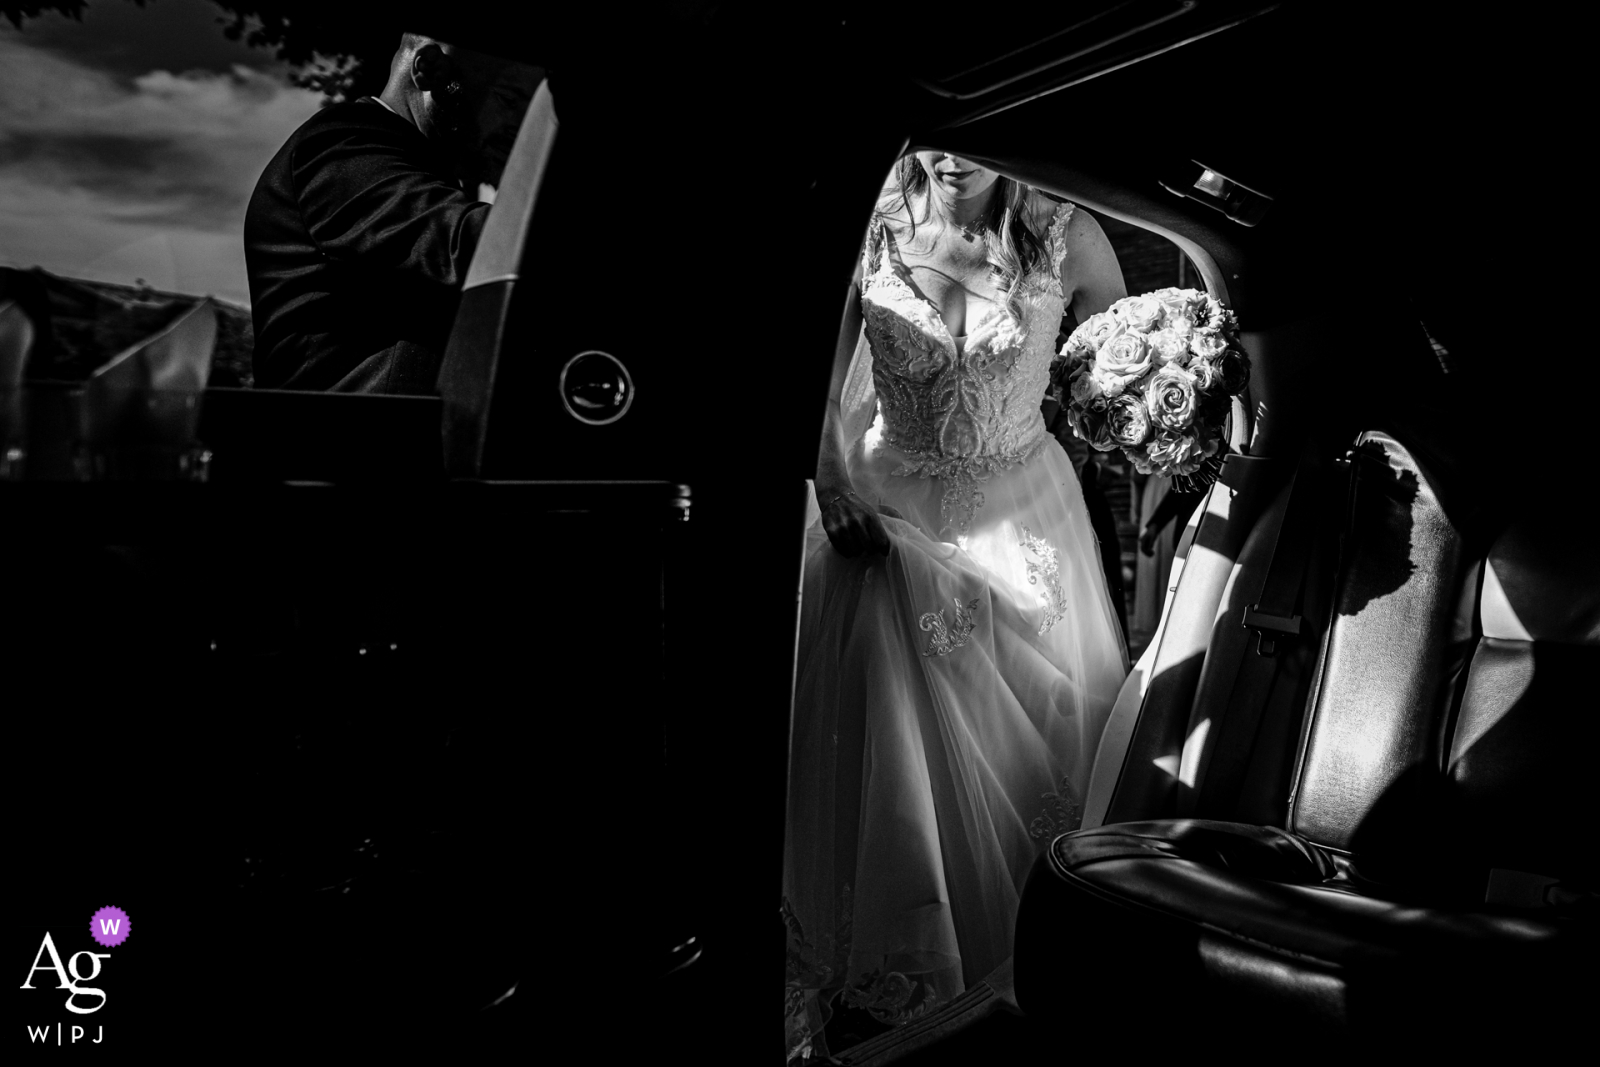 The bride gets into the limo for her Château de Nolet, Aucamville, France wedding